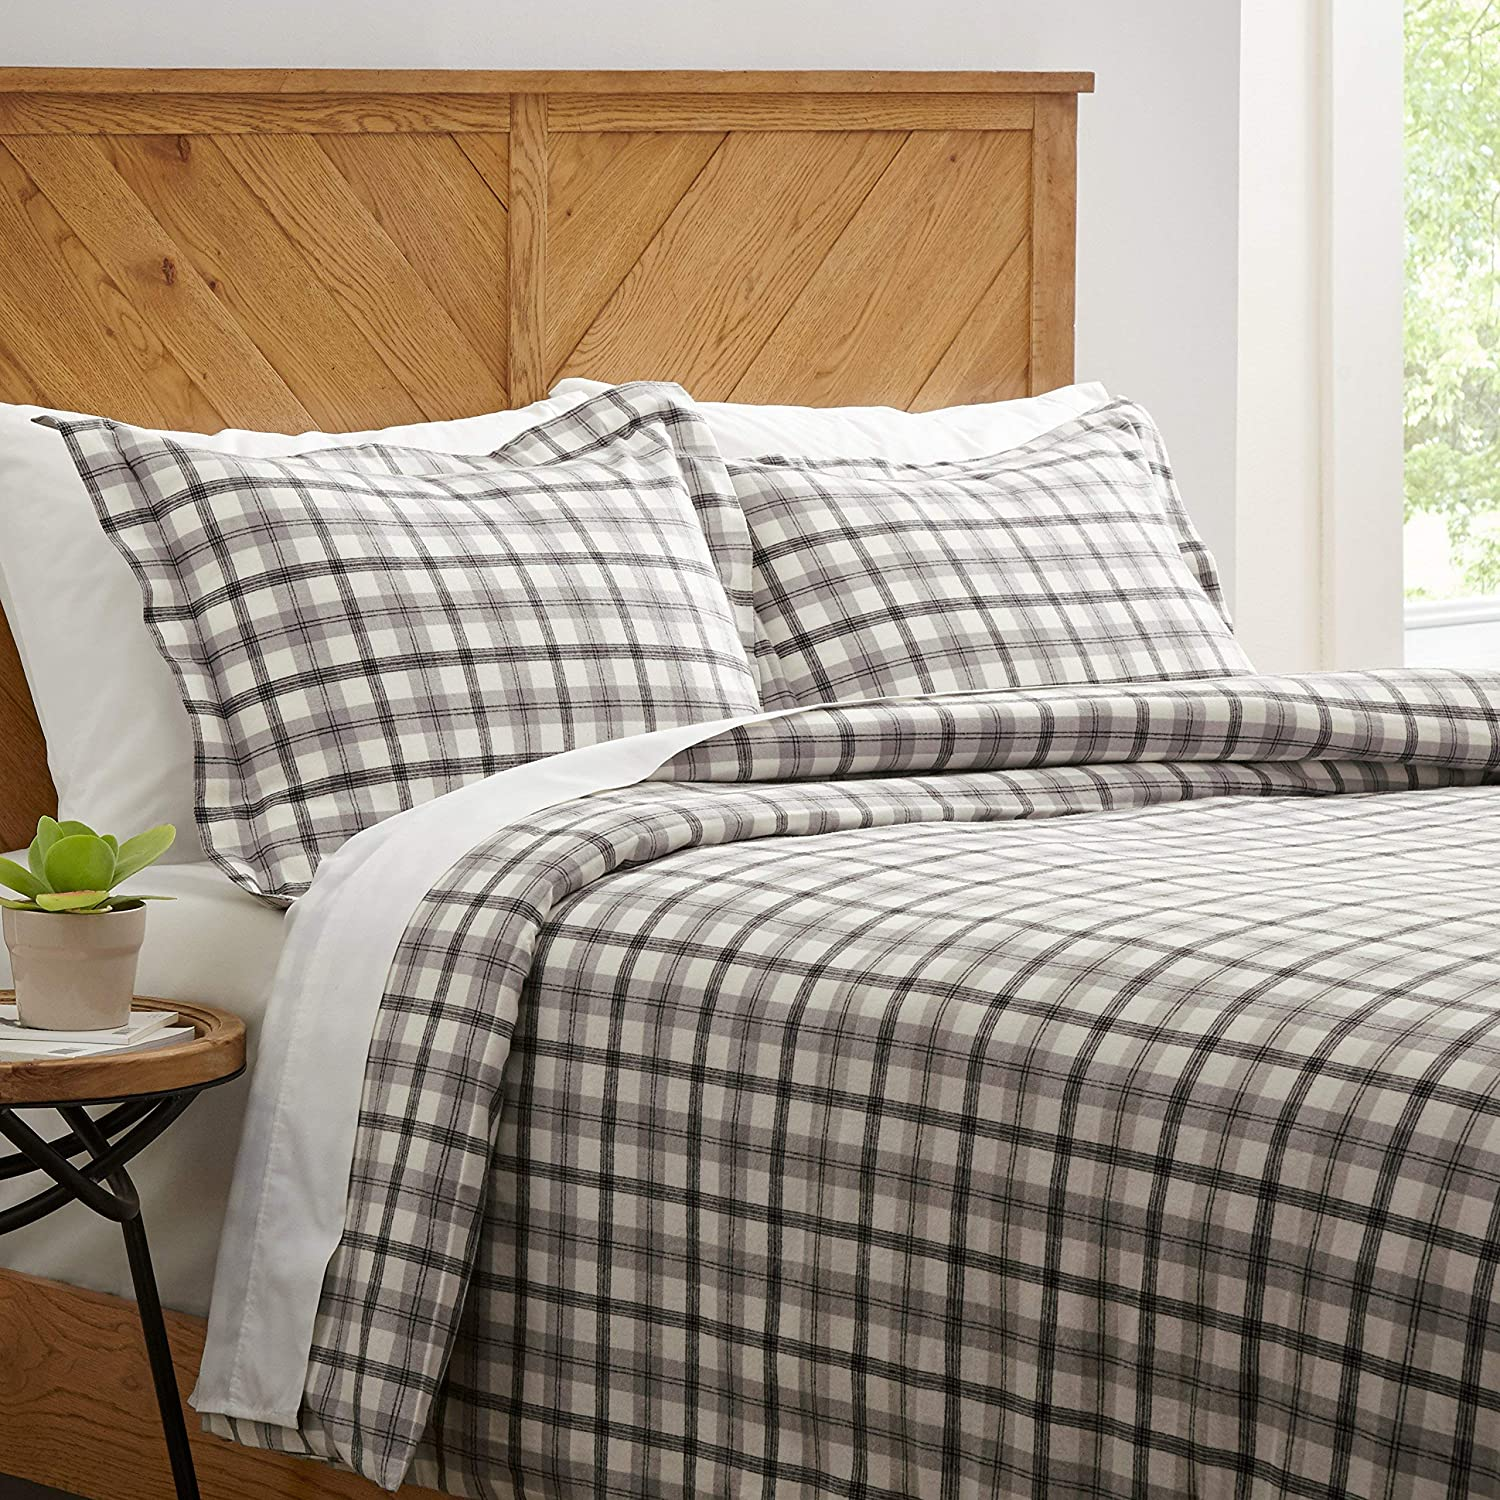 Stone & Beam Rustic Plaid Flannel Duvet Cover Set, Full / Queen, Black and White